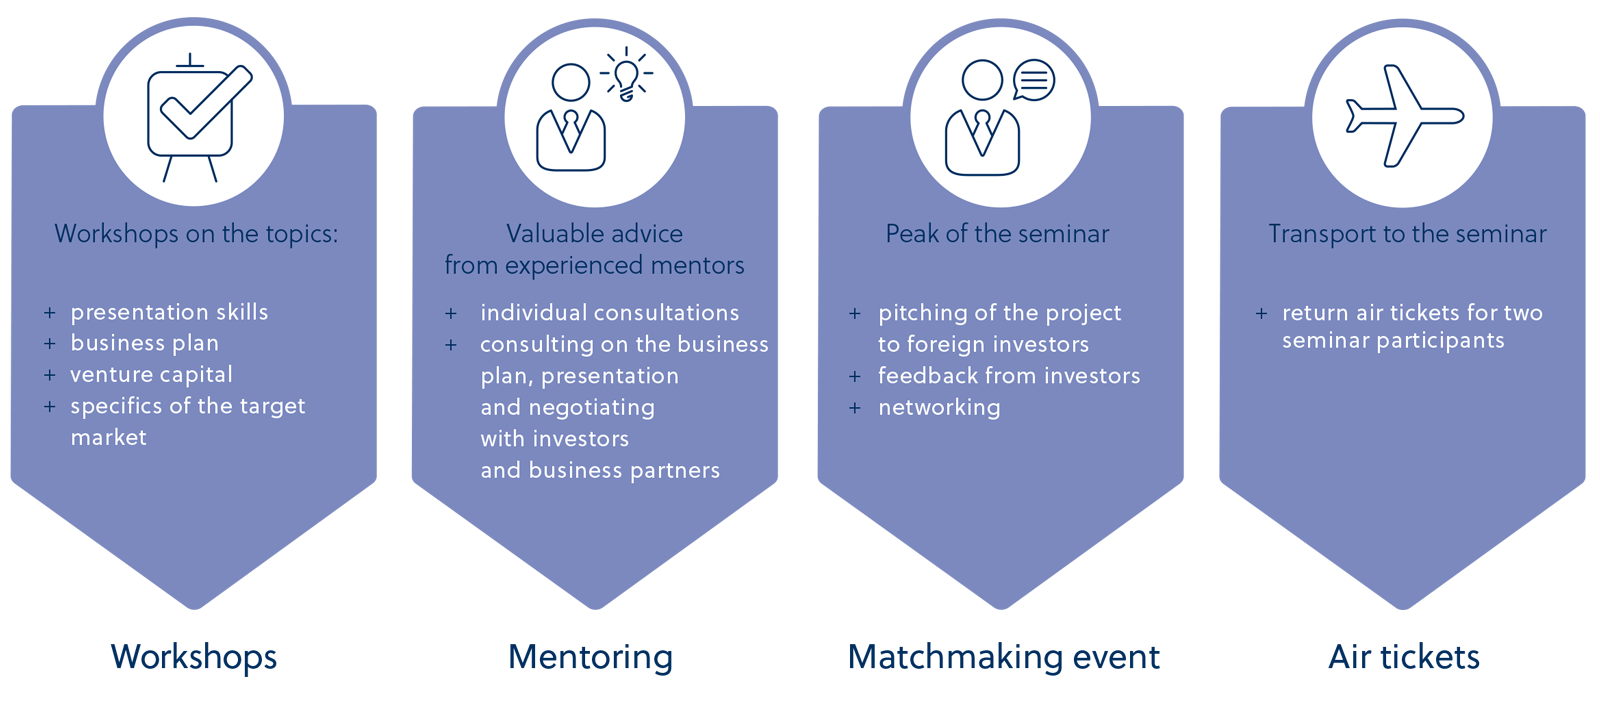 Matchmaking Isn t Just for Dating. It s a Model for Many New Businesses